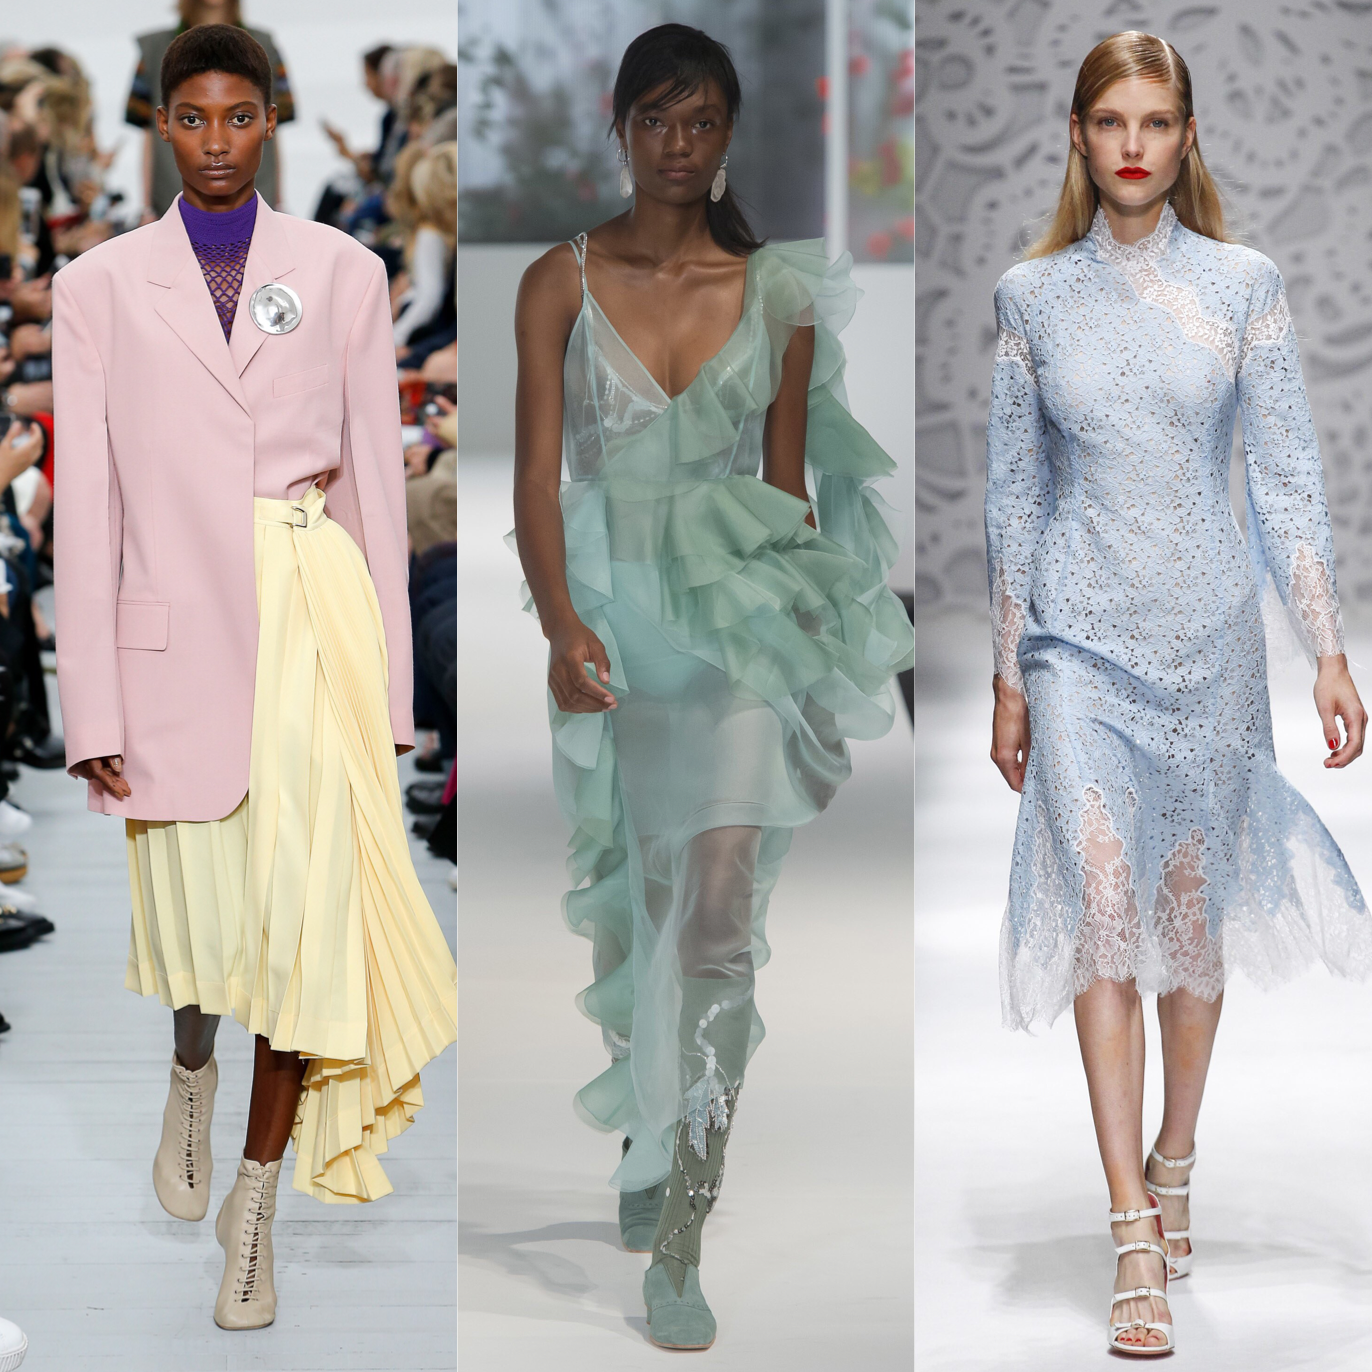 HOW TO WEAR PASTELS THIS SEASON